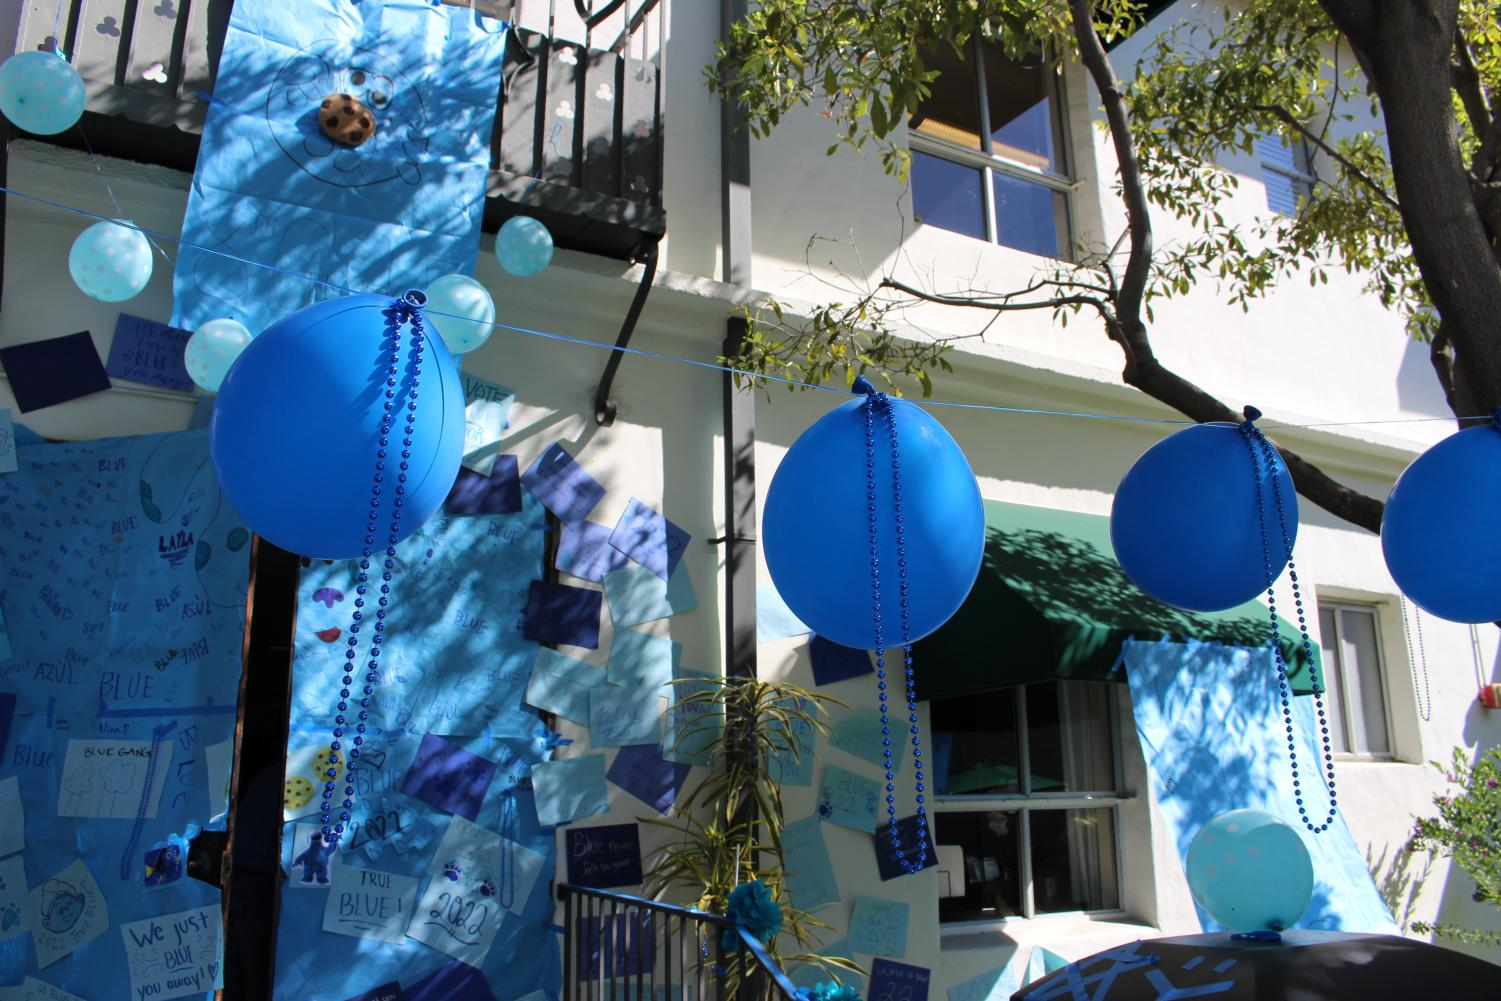 The+eighth+grade+class+was+assigned+the+color+blue.+They+decorated+their+door+with+blue+balloons%2C+necklaces+and+posters.